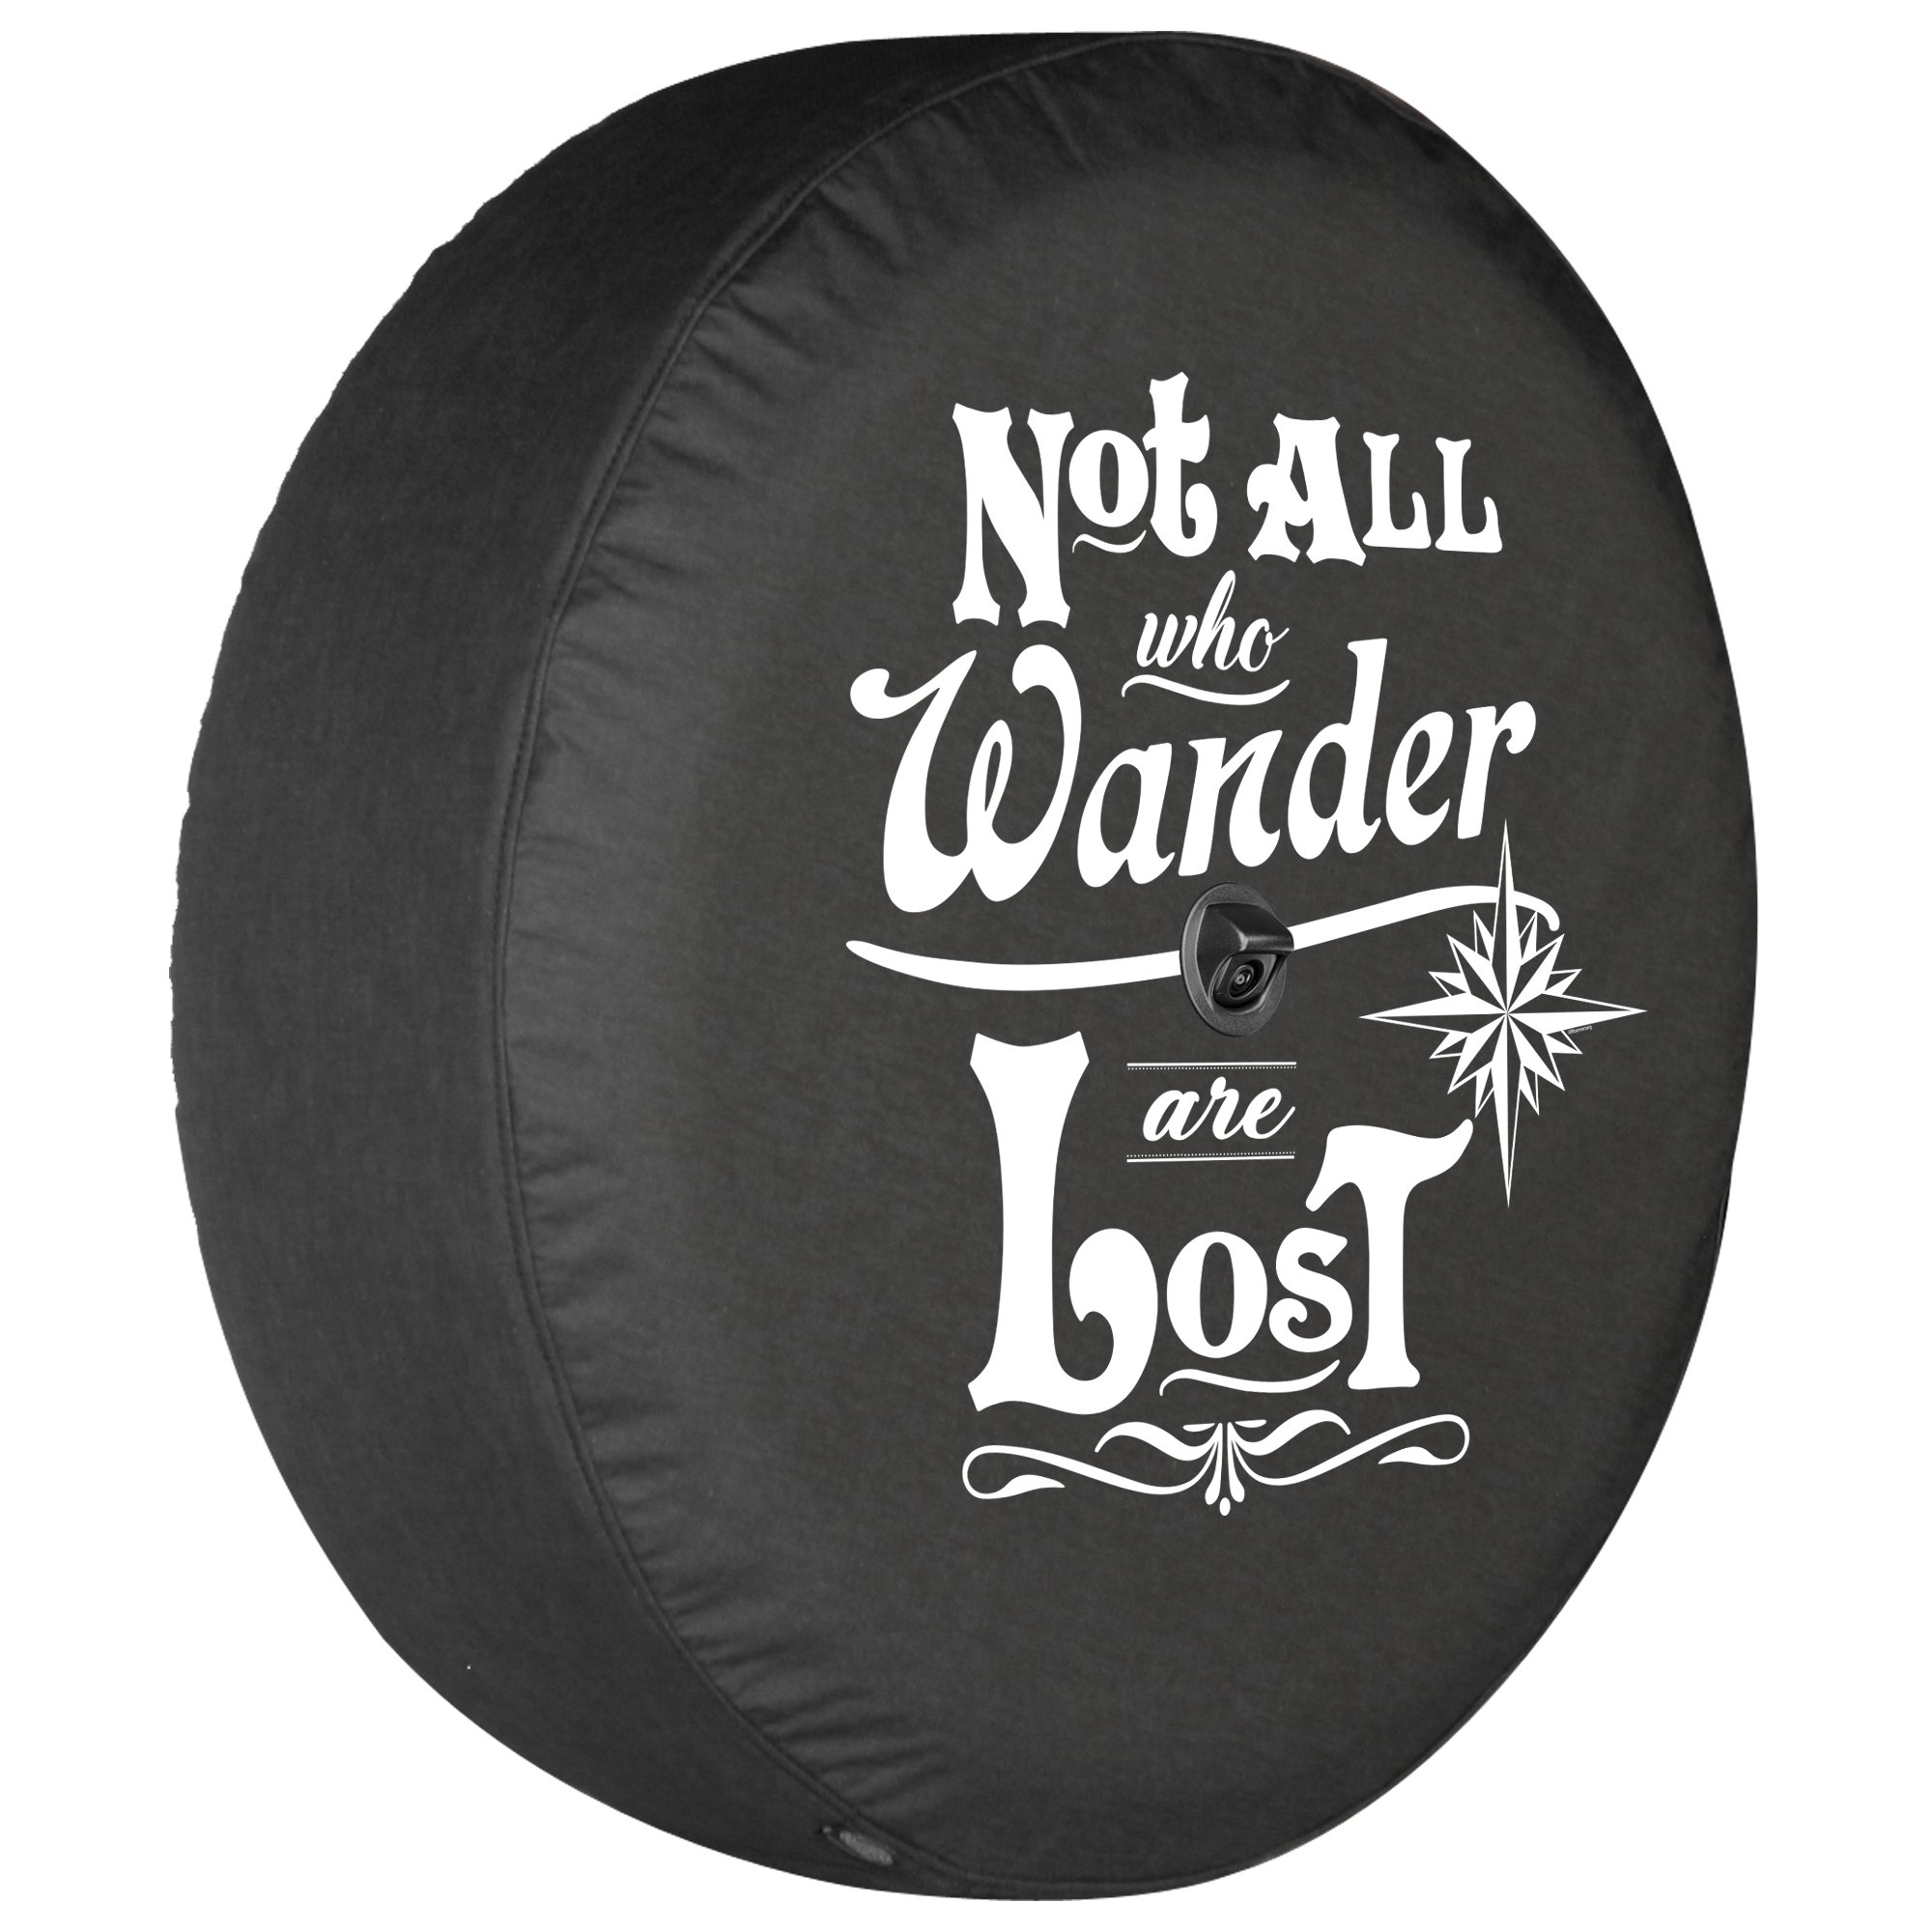 17 Car Styling Spare Wheel Tire Cover 17 Inch Suitable For Compatible Jeep Wrangler Spare Tire Cover Size 31-32.6